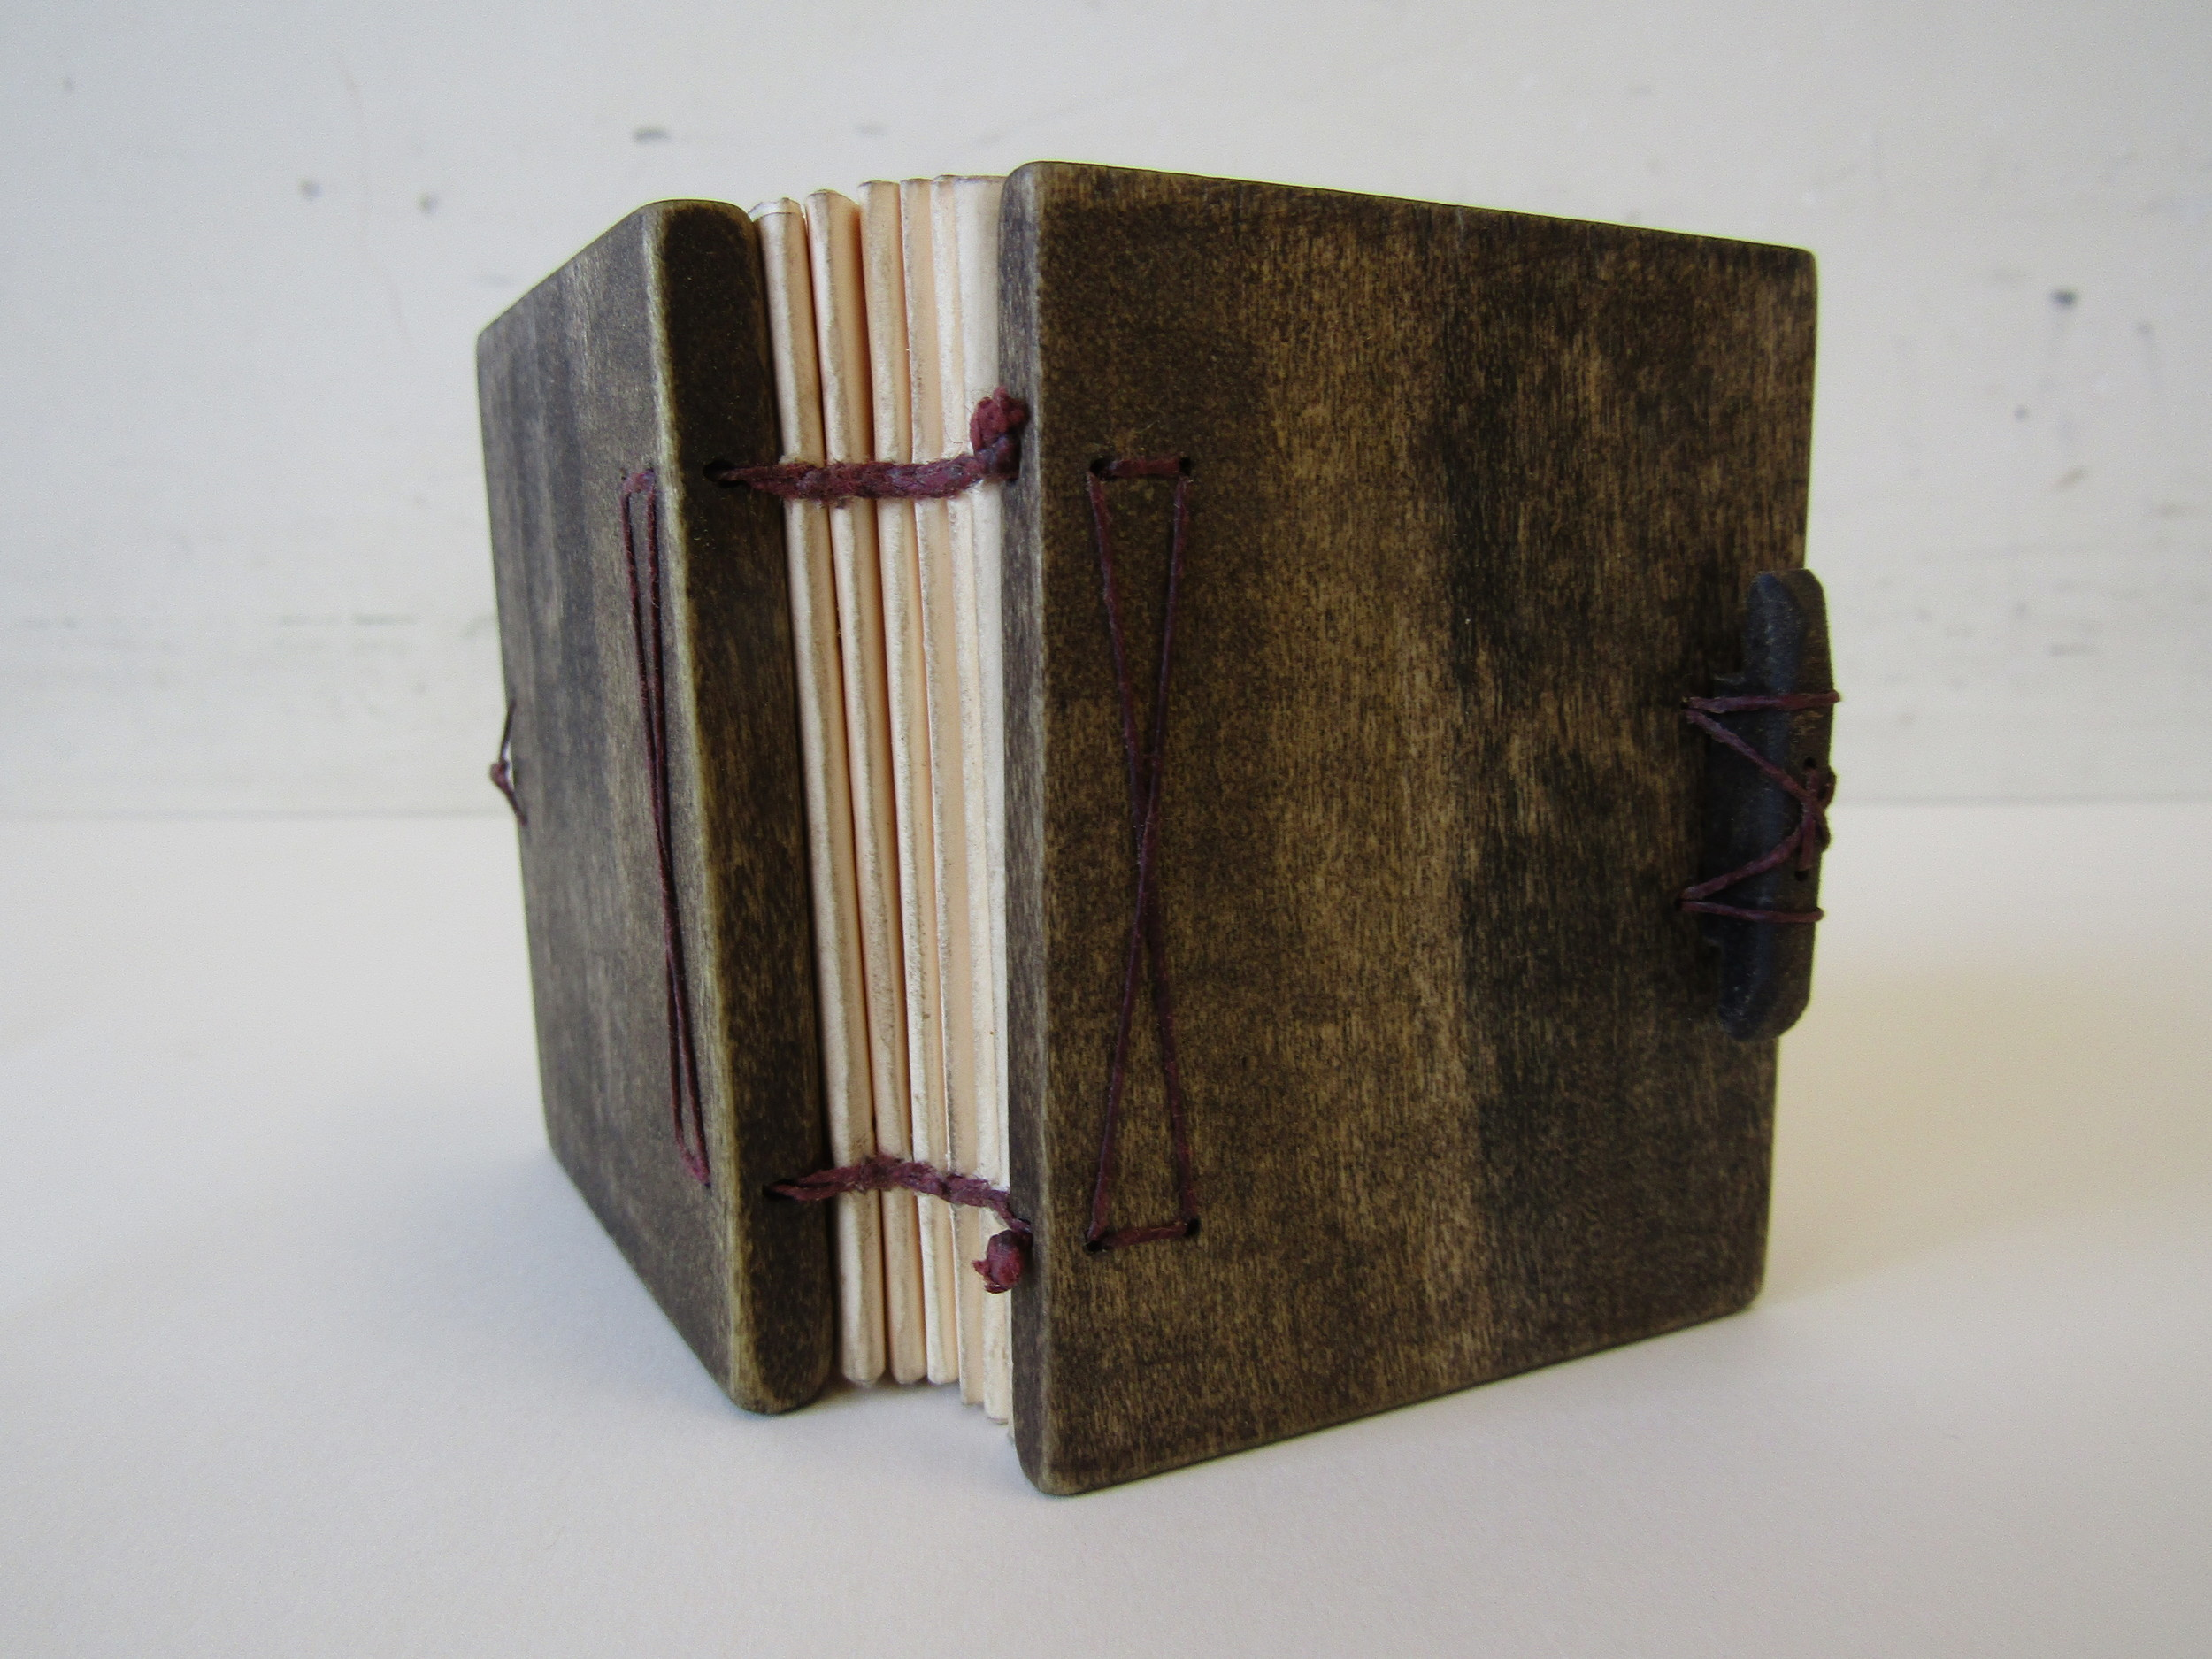 Two Needle Coptic Binding With Wooden Covers